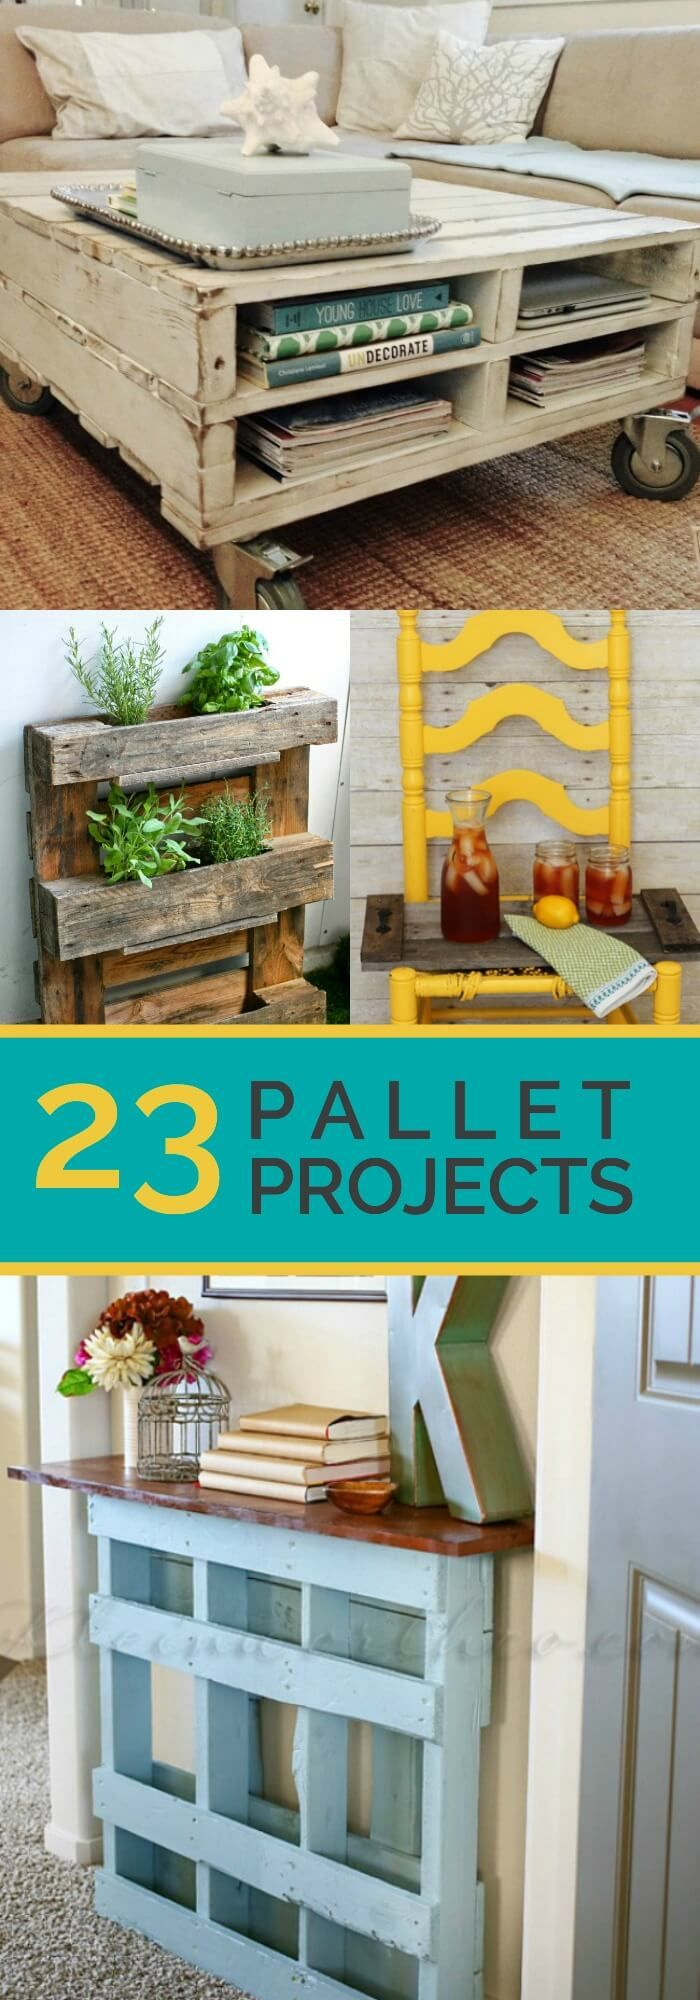 23 Awesome DIY Wood Pallet Ideas 30